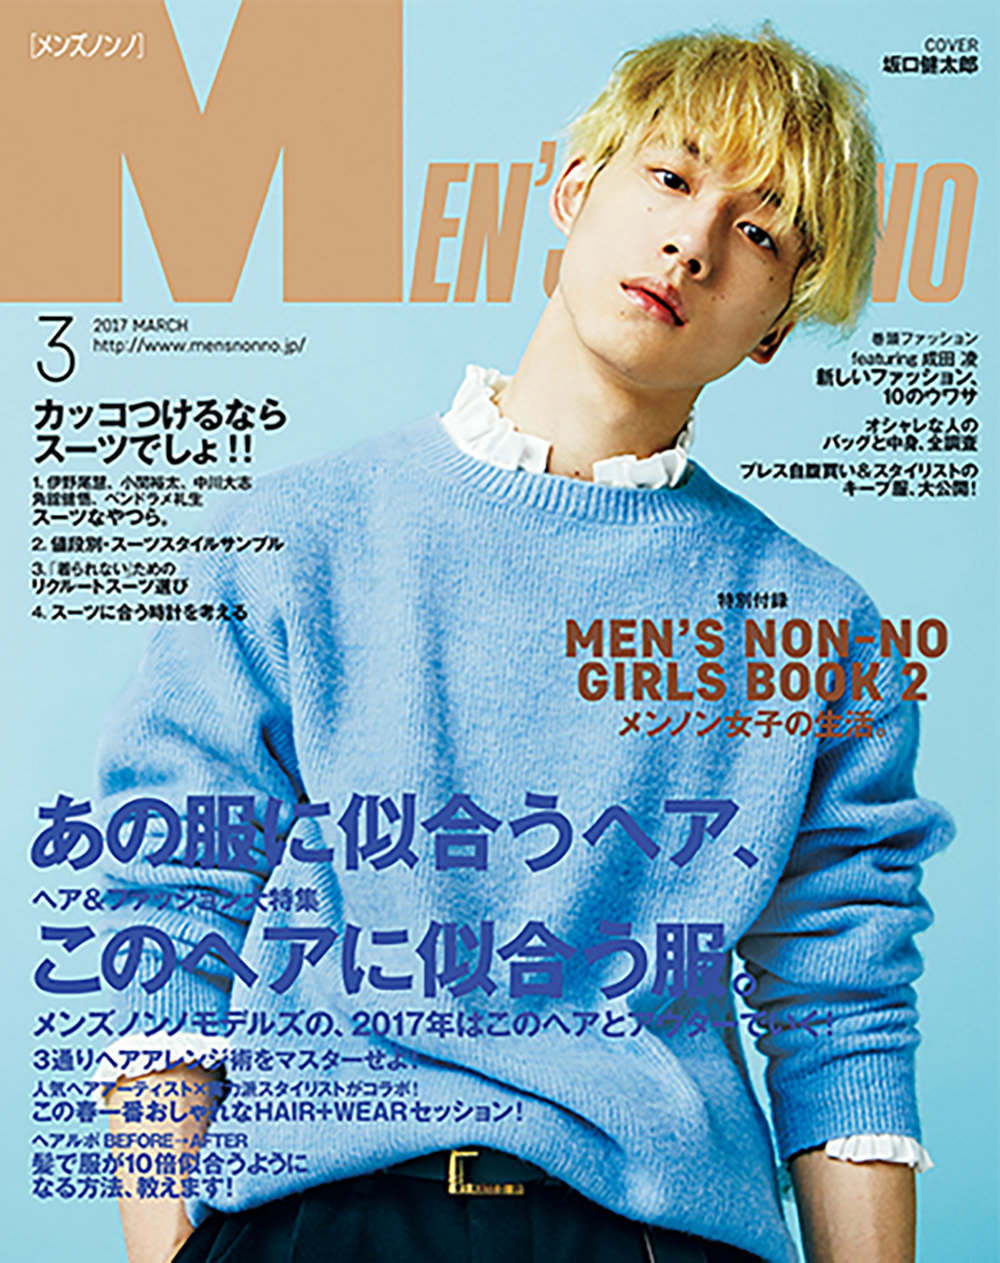 MEN'S NON-NO Mar 2017 press